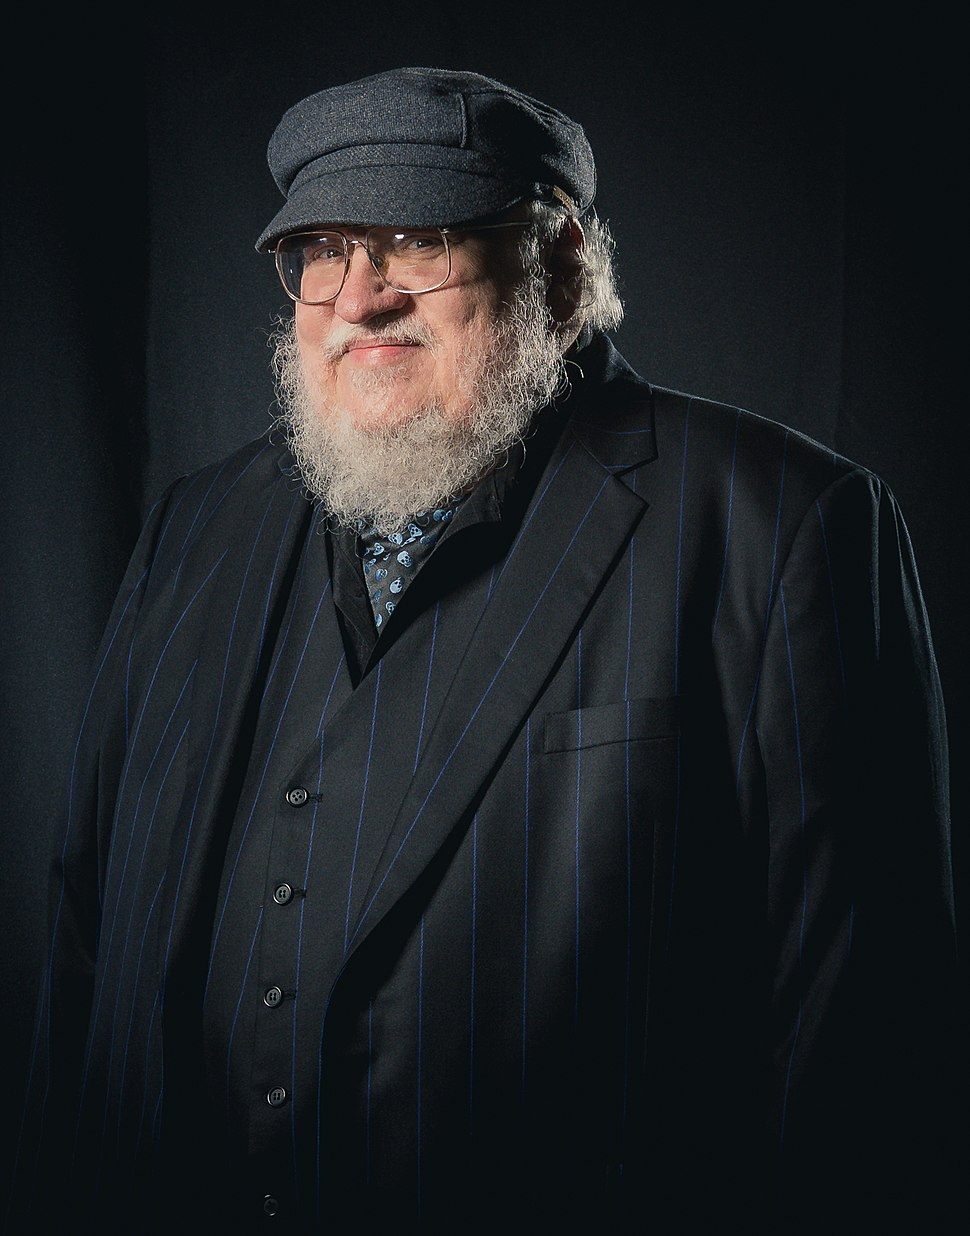 George R. R. Martin at Worldcon in Helsinki 2017